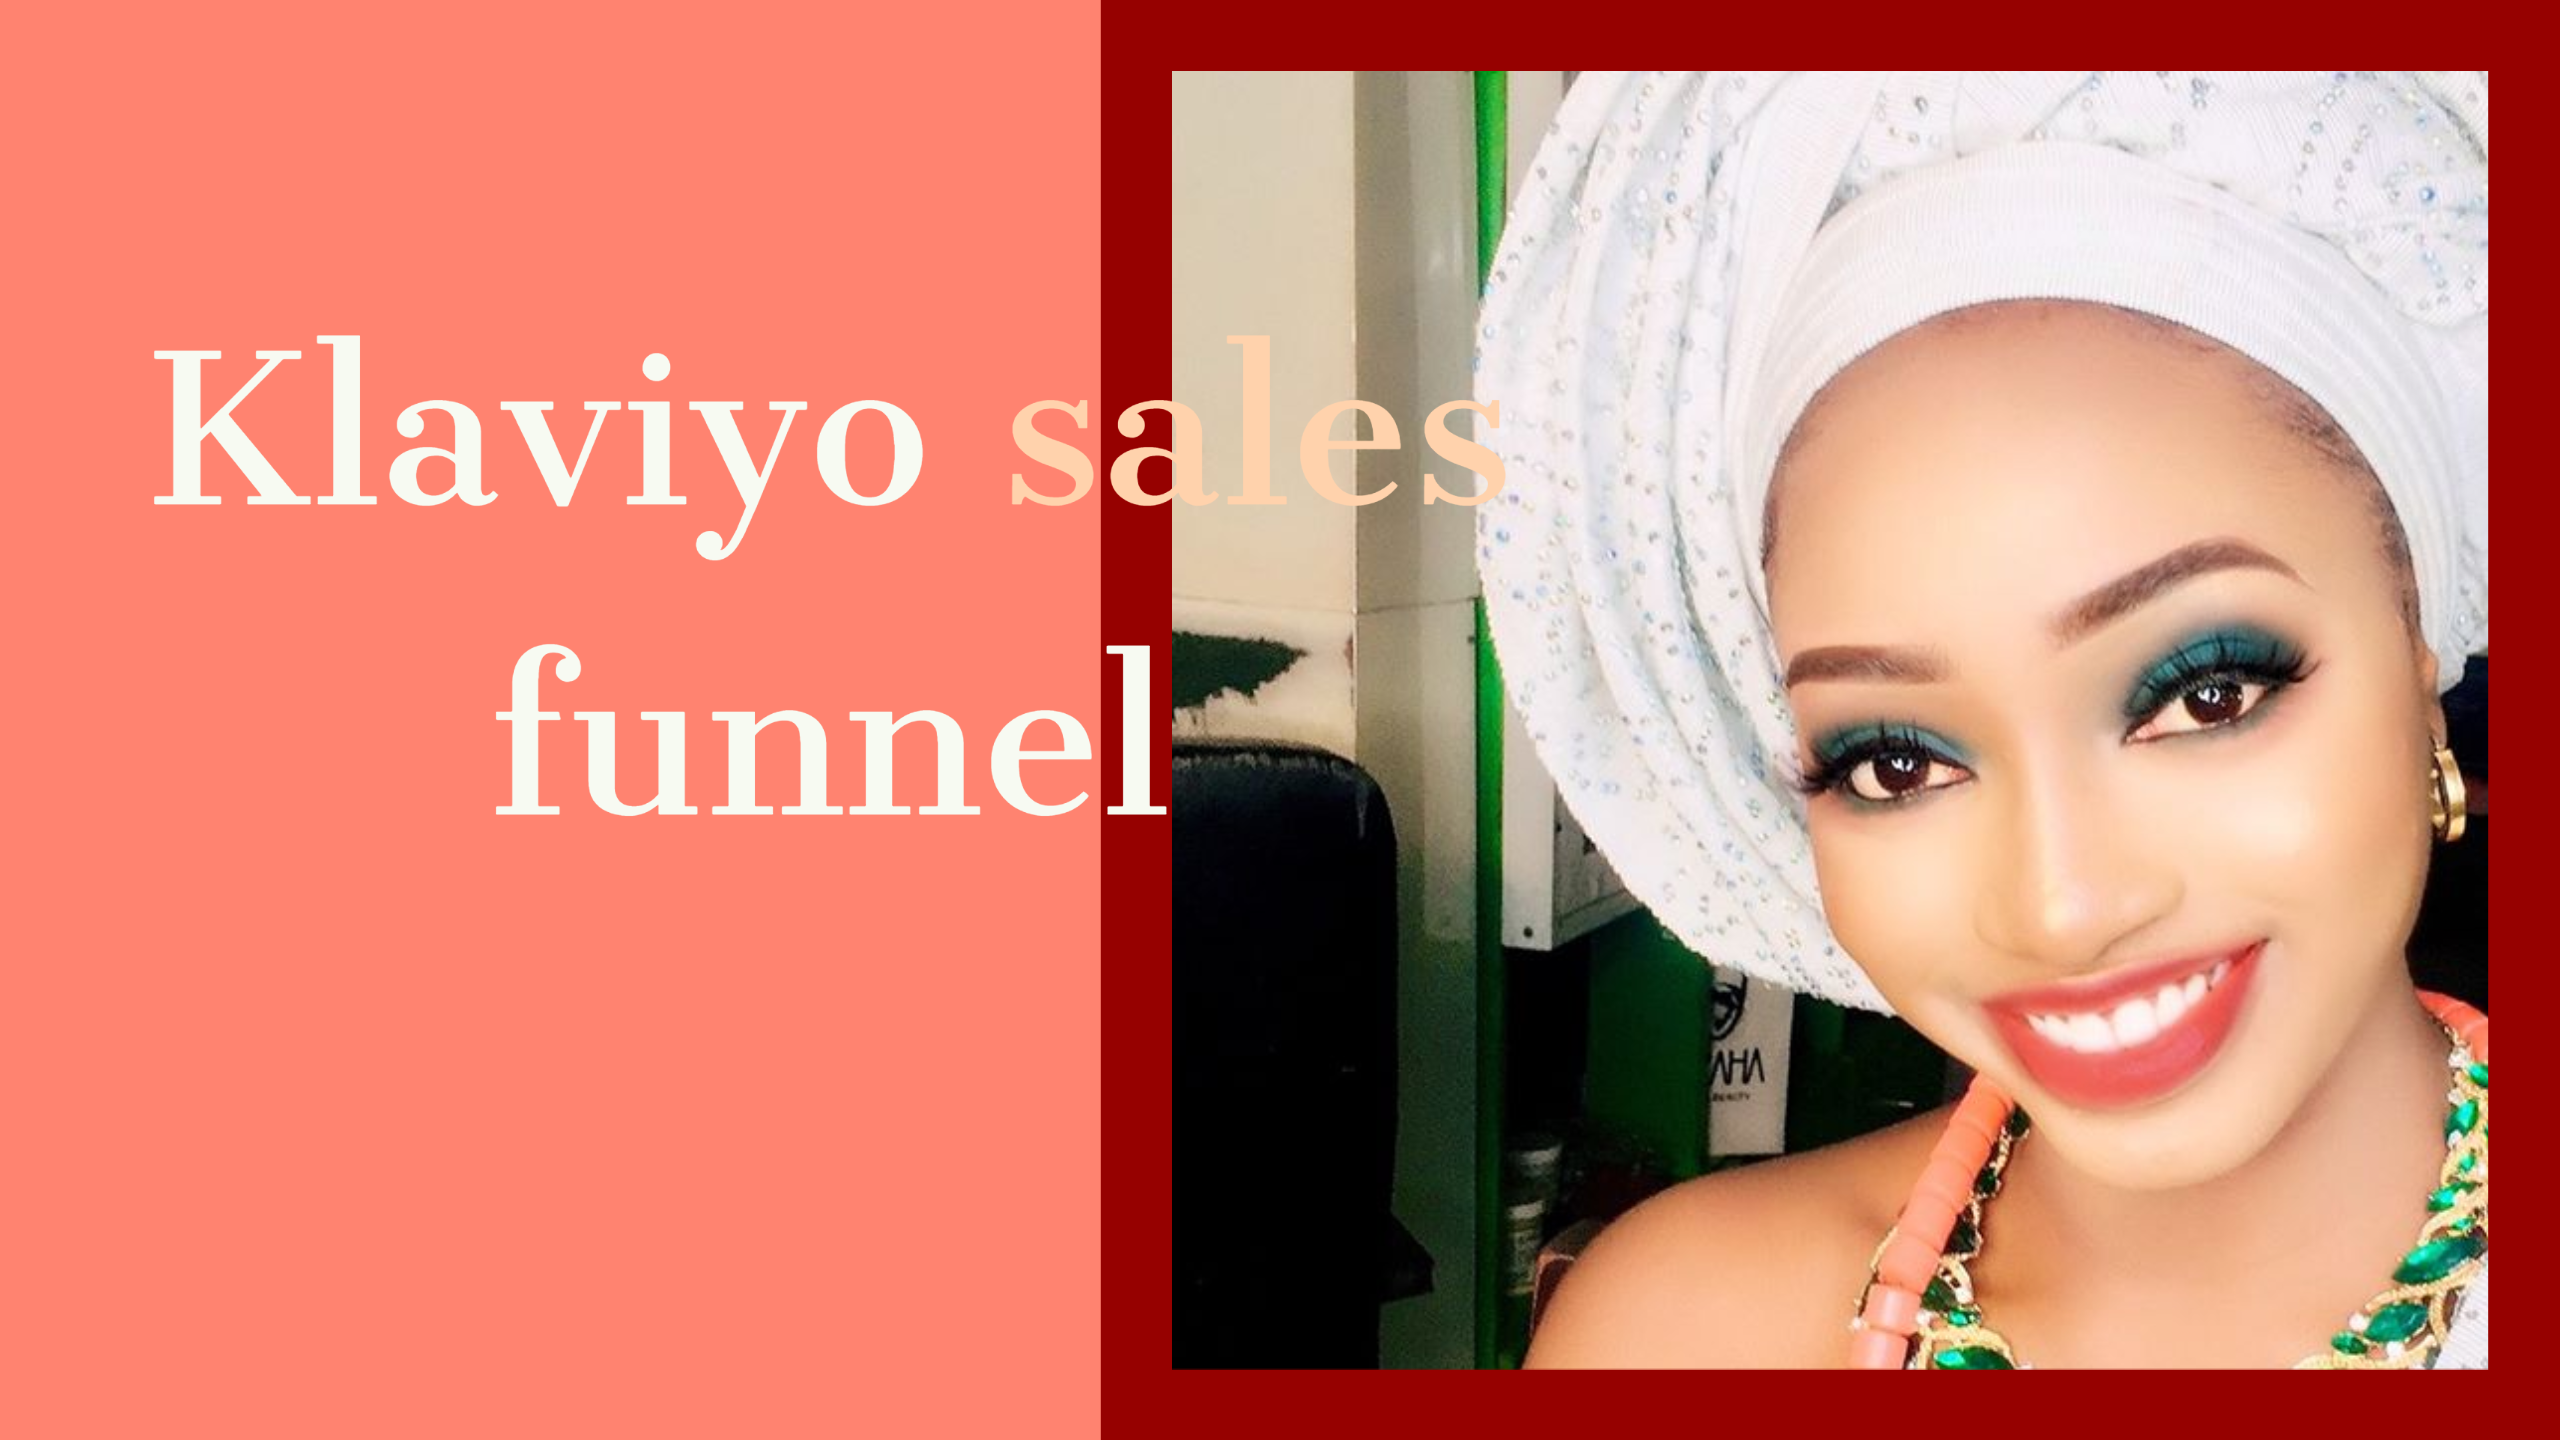 Do klaviyo sales funnel, click funnels and groove funnel for your shopify store, FiverrBox